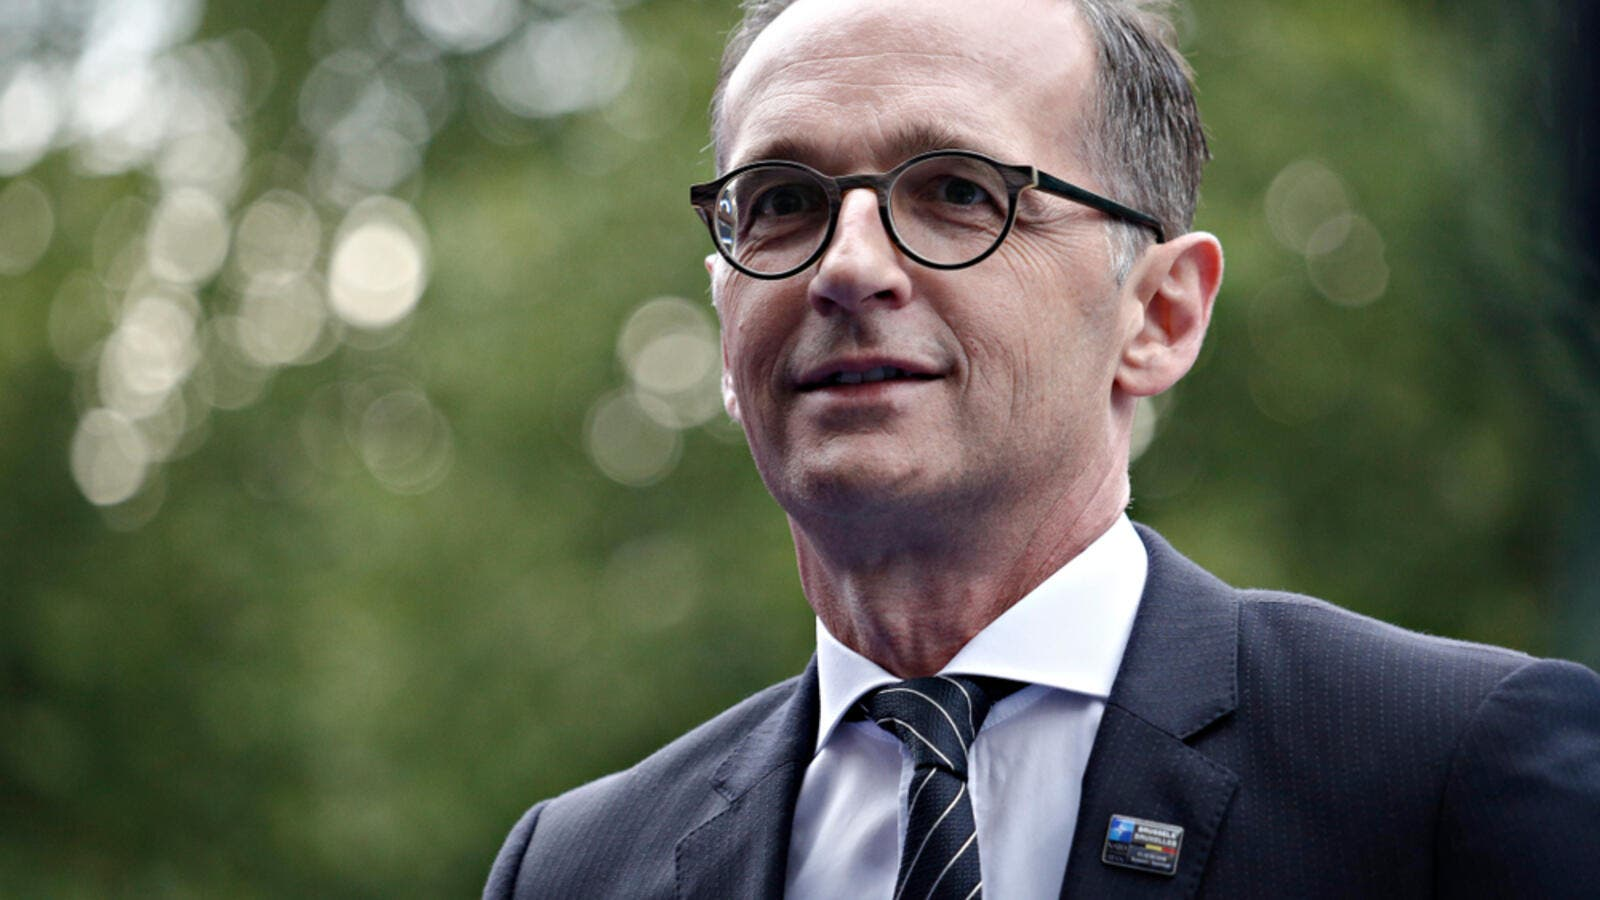 German Foreign Minister Heiko Maas criticizes Donald Trump's sanction policy against trade partners. (Shutterstock/ File Photo)